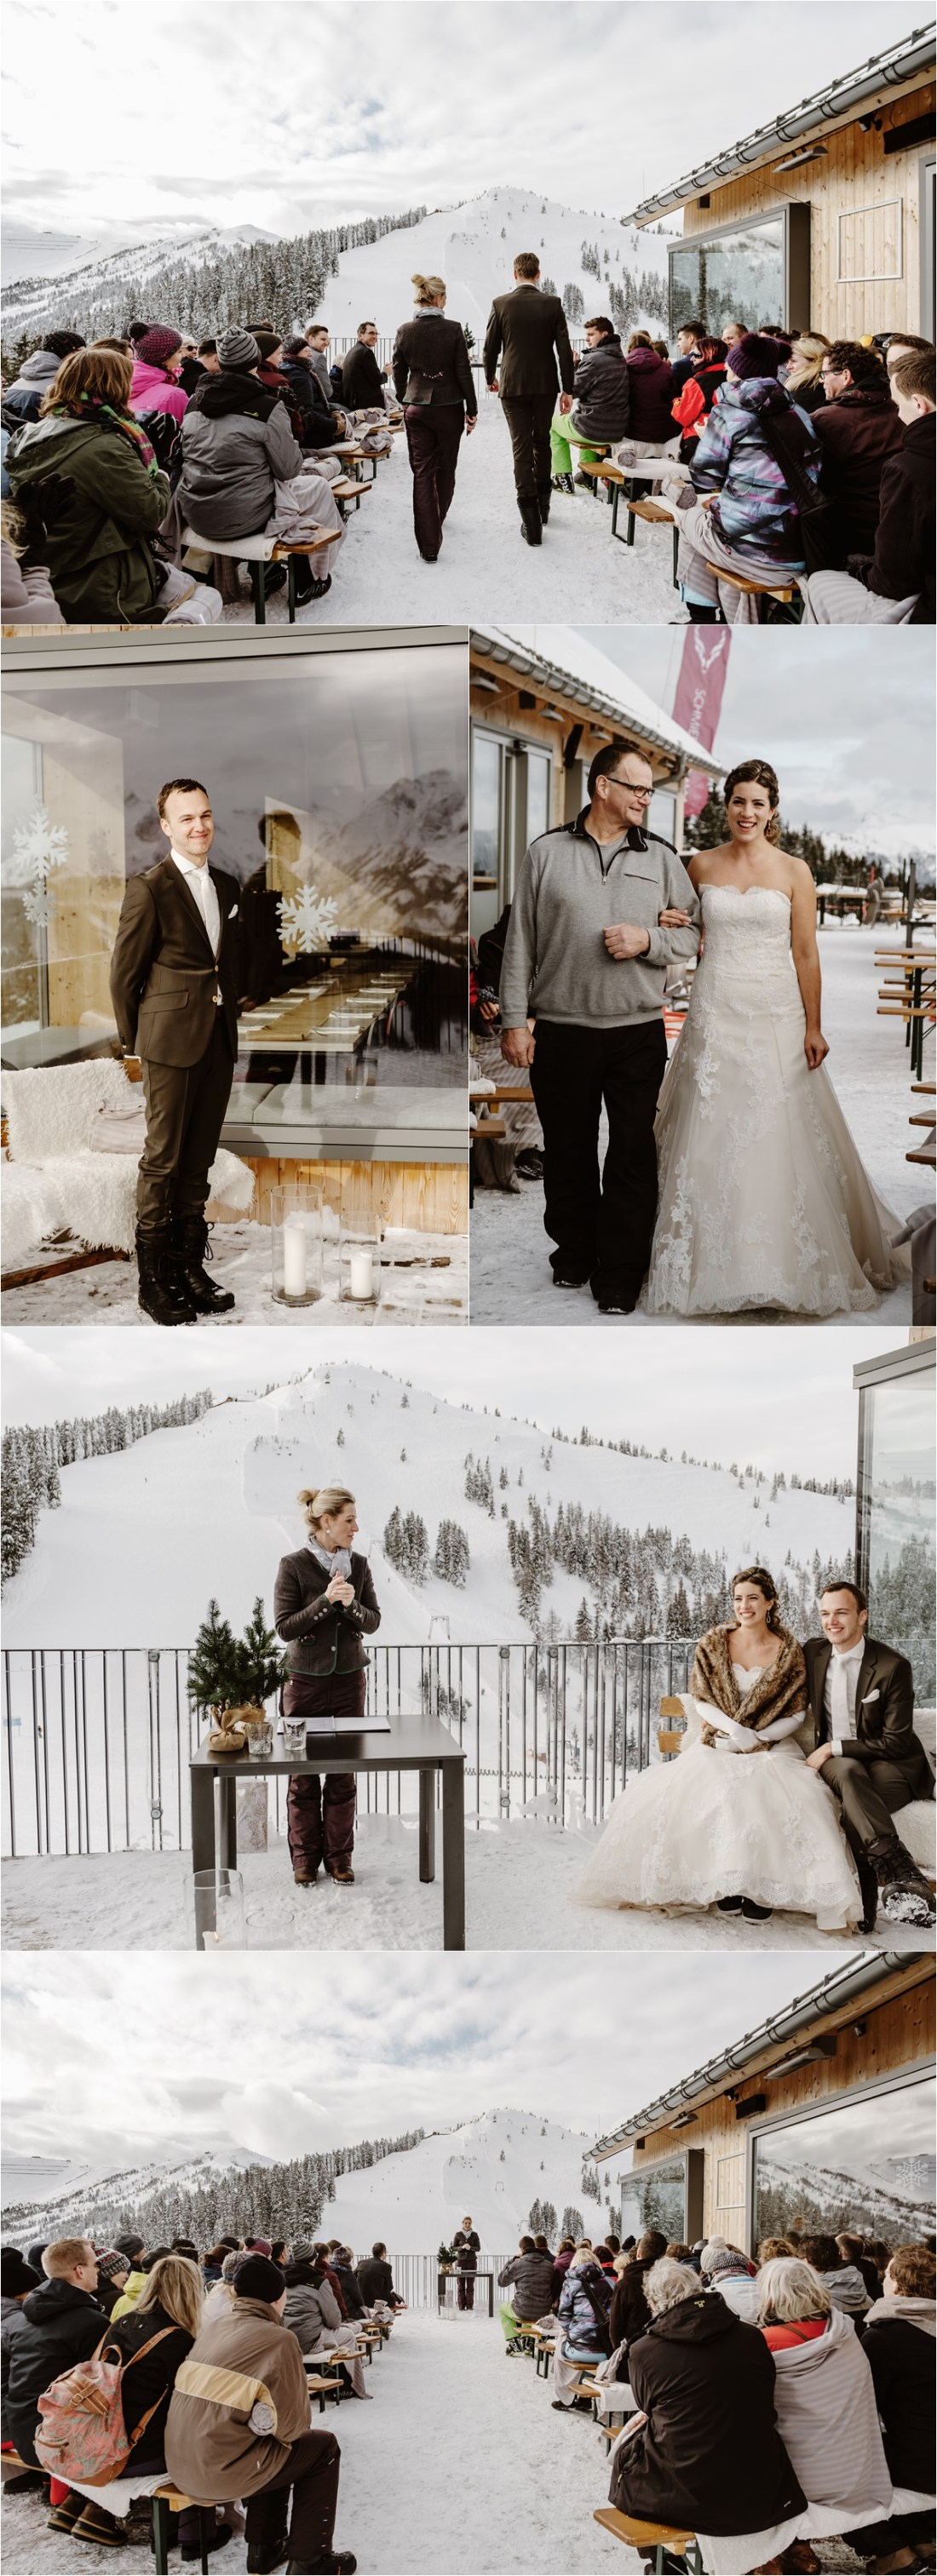 An outdoor winter wedding ceremony at the Schmiedhof alm mountain hut in the Austrian Alps by Wild Connections Photography